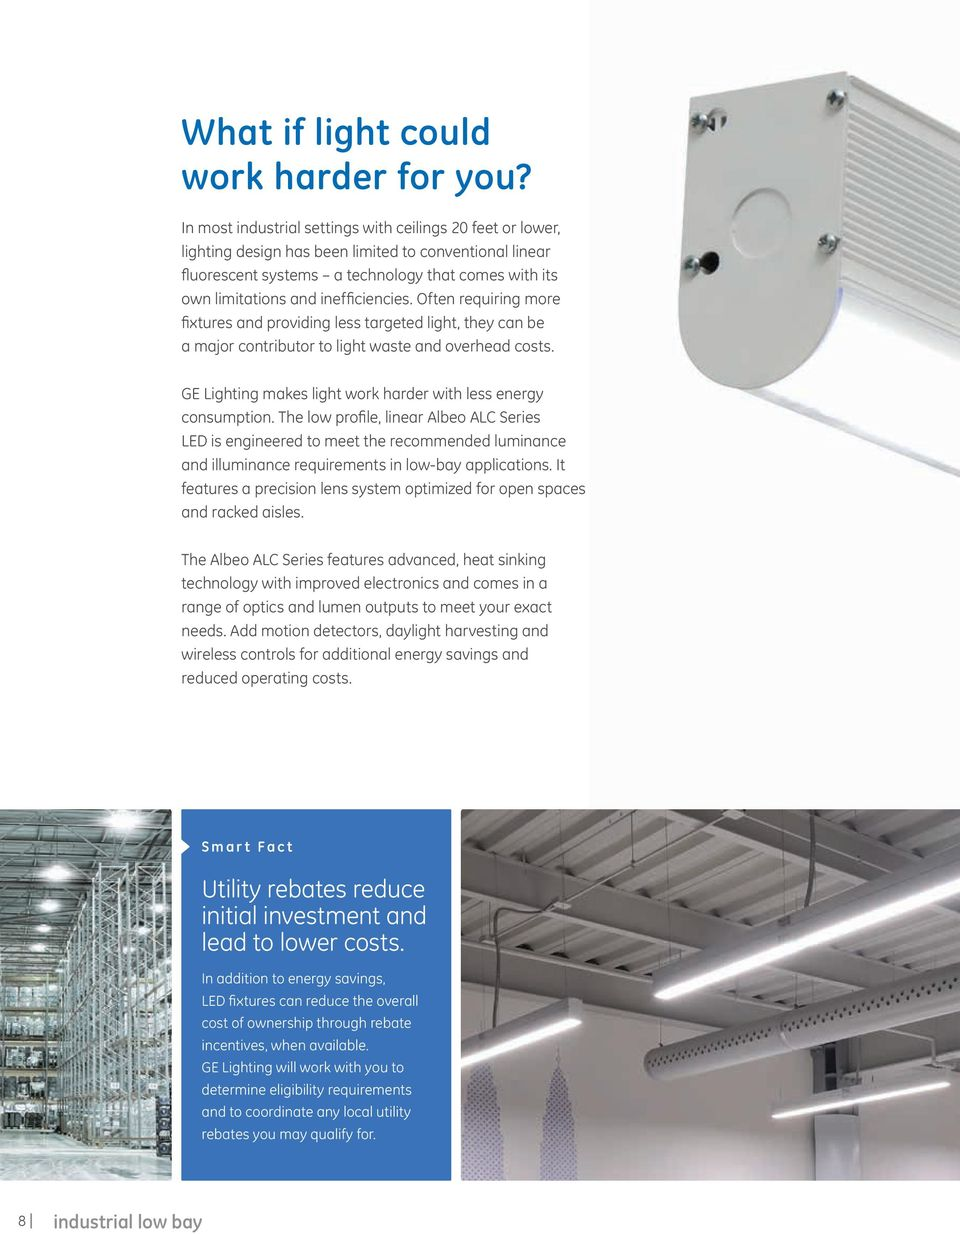 inefficiencies. Often requiring more fixtures and providing less targeted light, they can be a major contributor to light waste and overhead costs.